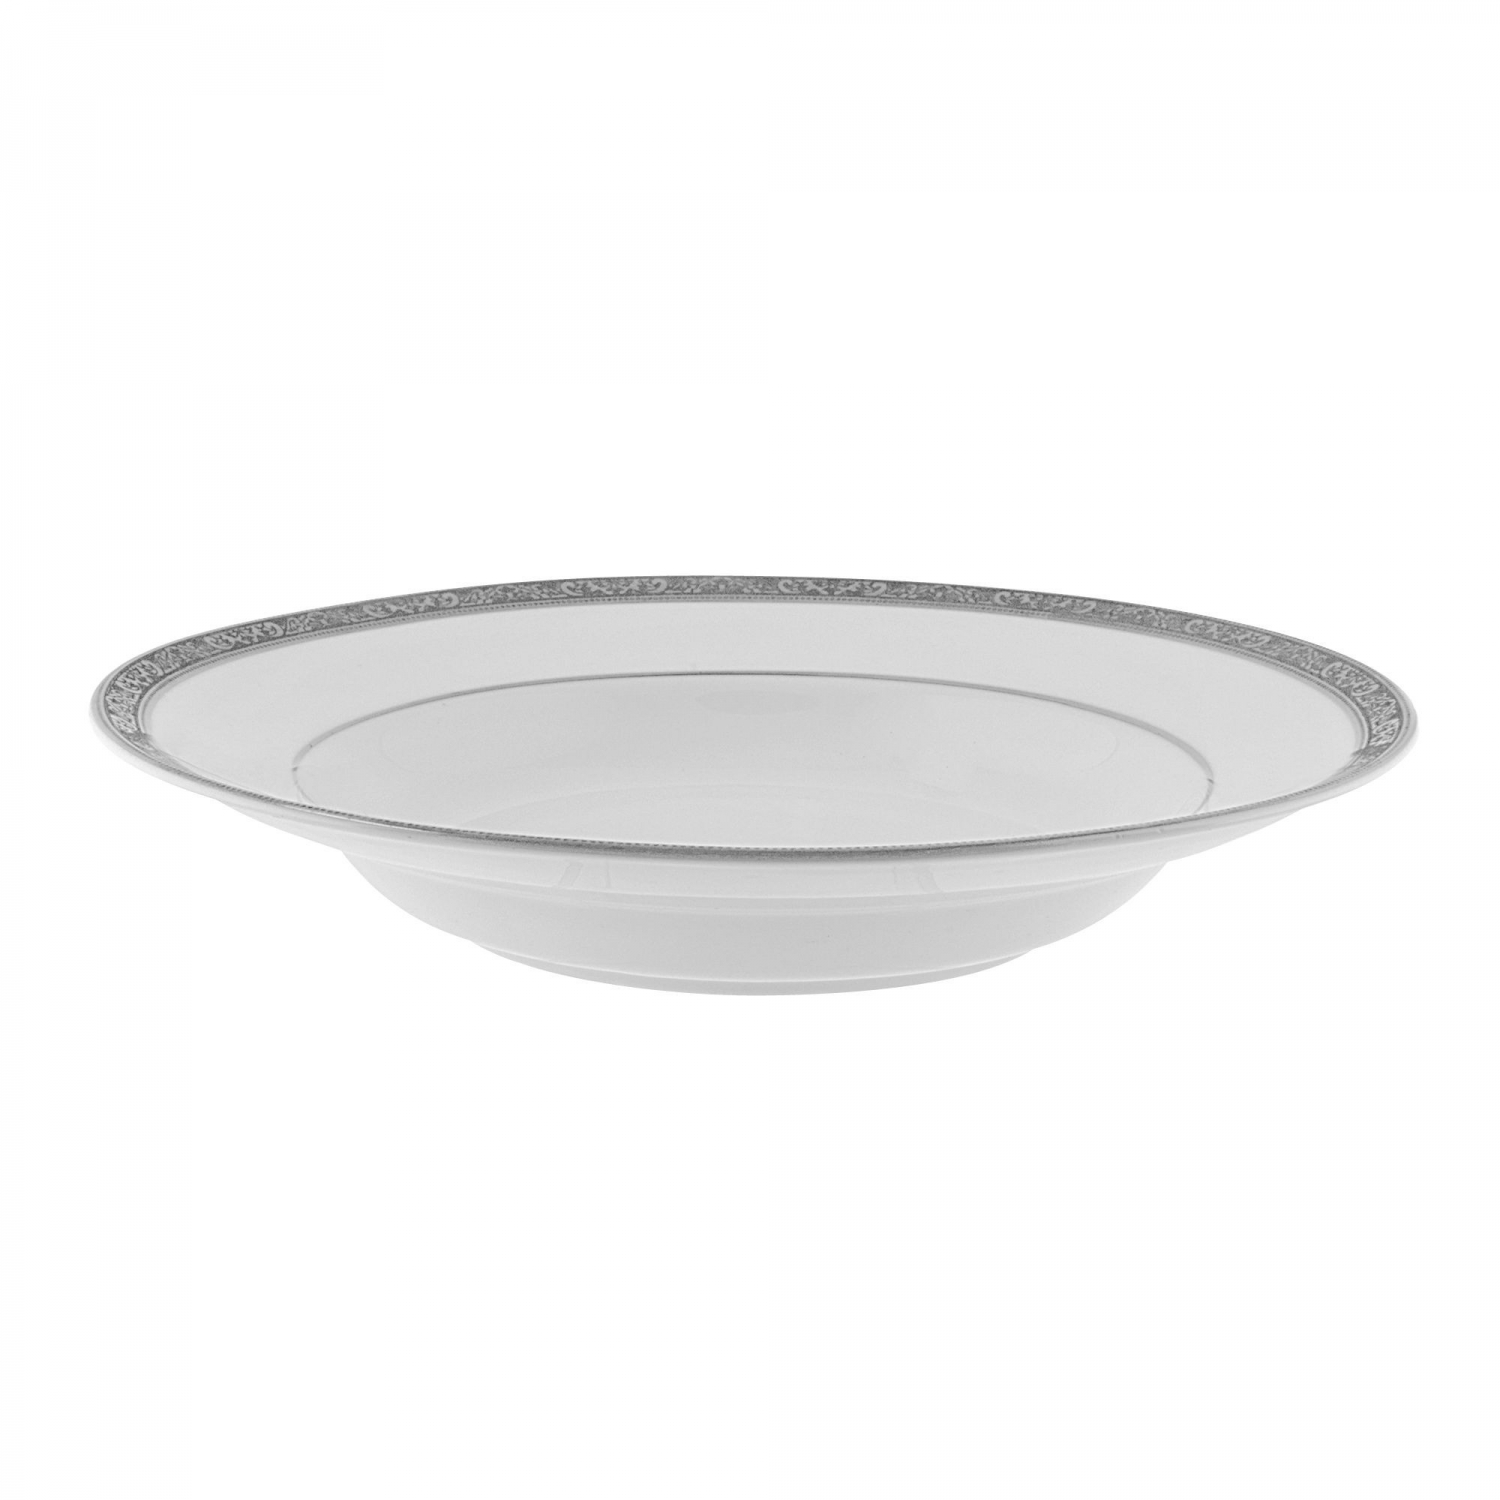 10 Strawberry Street PAR-3P Paradise Platinum Rim Soup Bowl 8 oz.